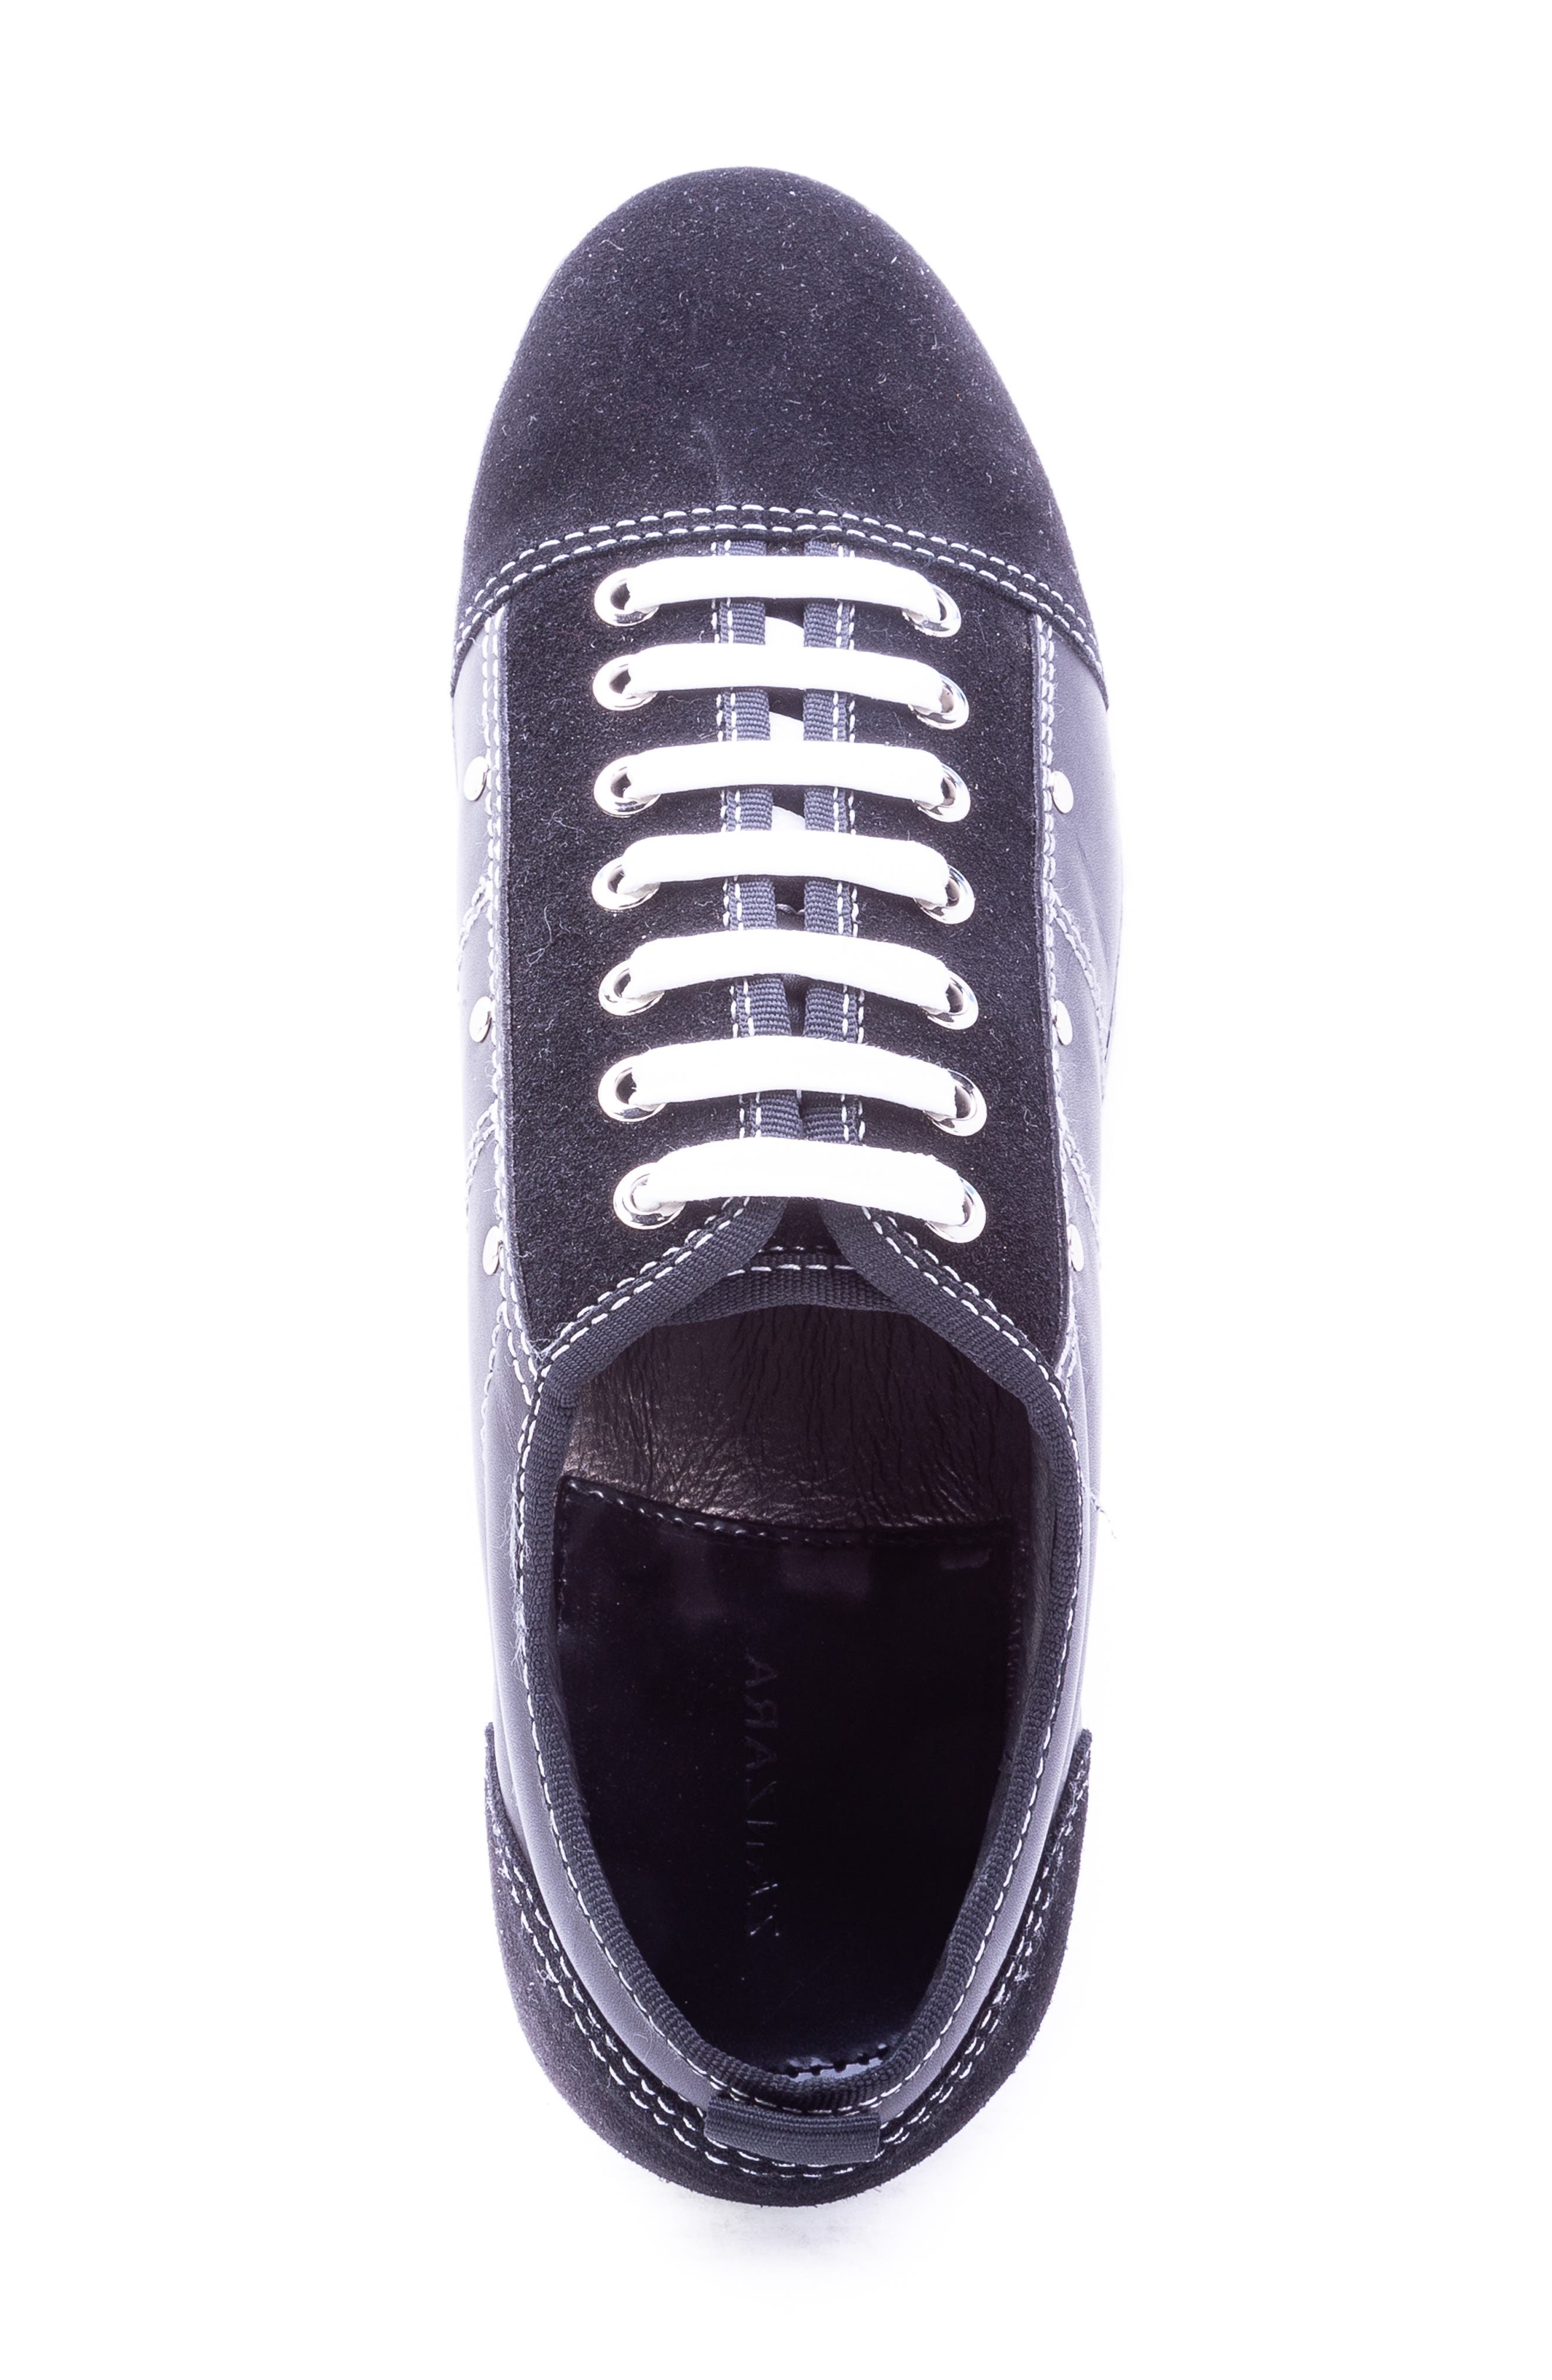 Severn Studded Low Top Sneaker,                             Alternate thumbnail 5, color,                             BLACK SUEDE/ LEATHER